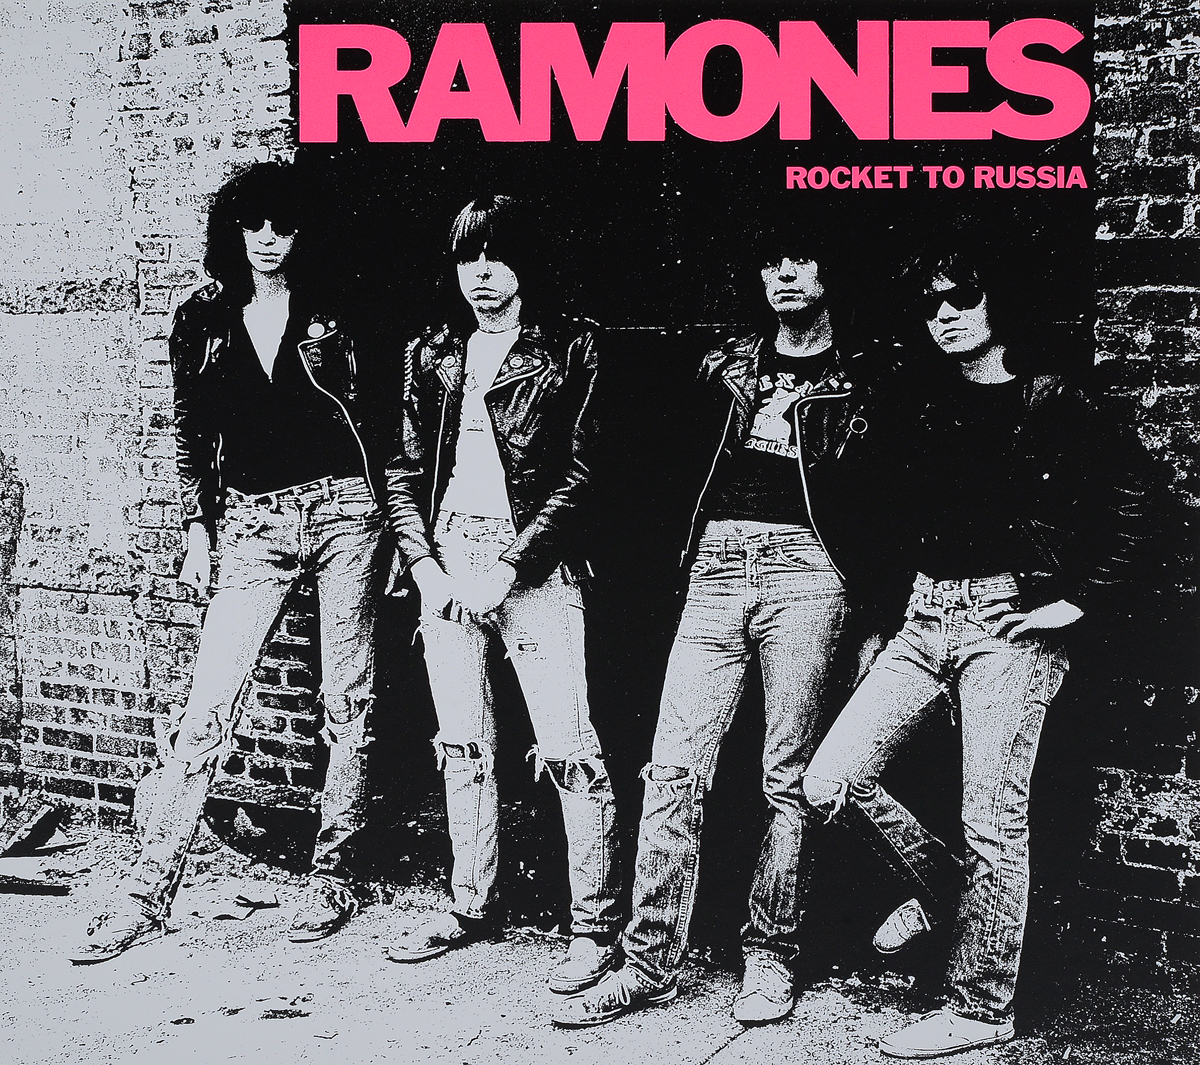 The Ramones Ramones. Rocket To Russia (40th Anniversary Deluxe Edition) (3 CD + LP) cd scorpions taken by force 50th anniversary deluxe edition